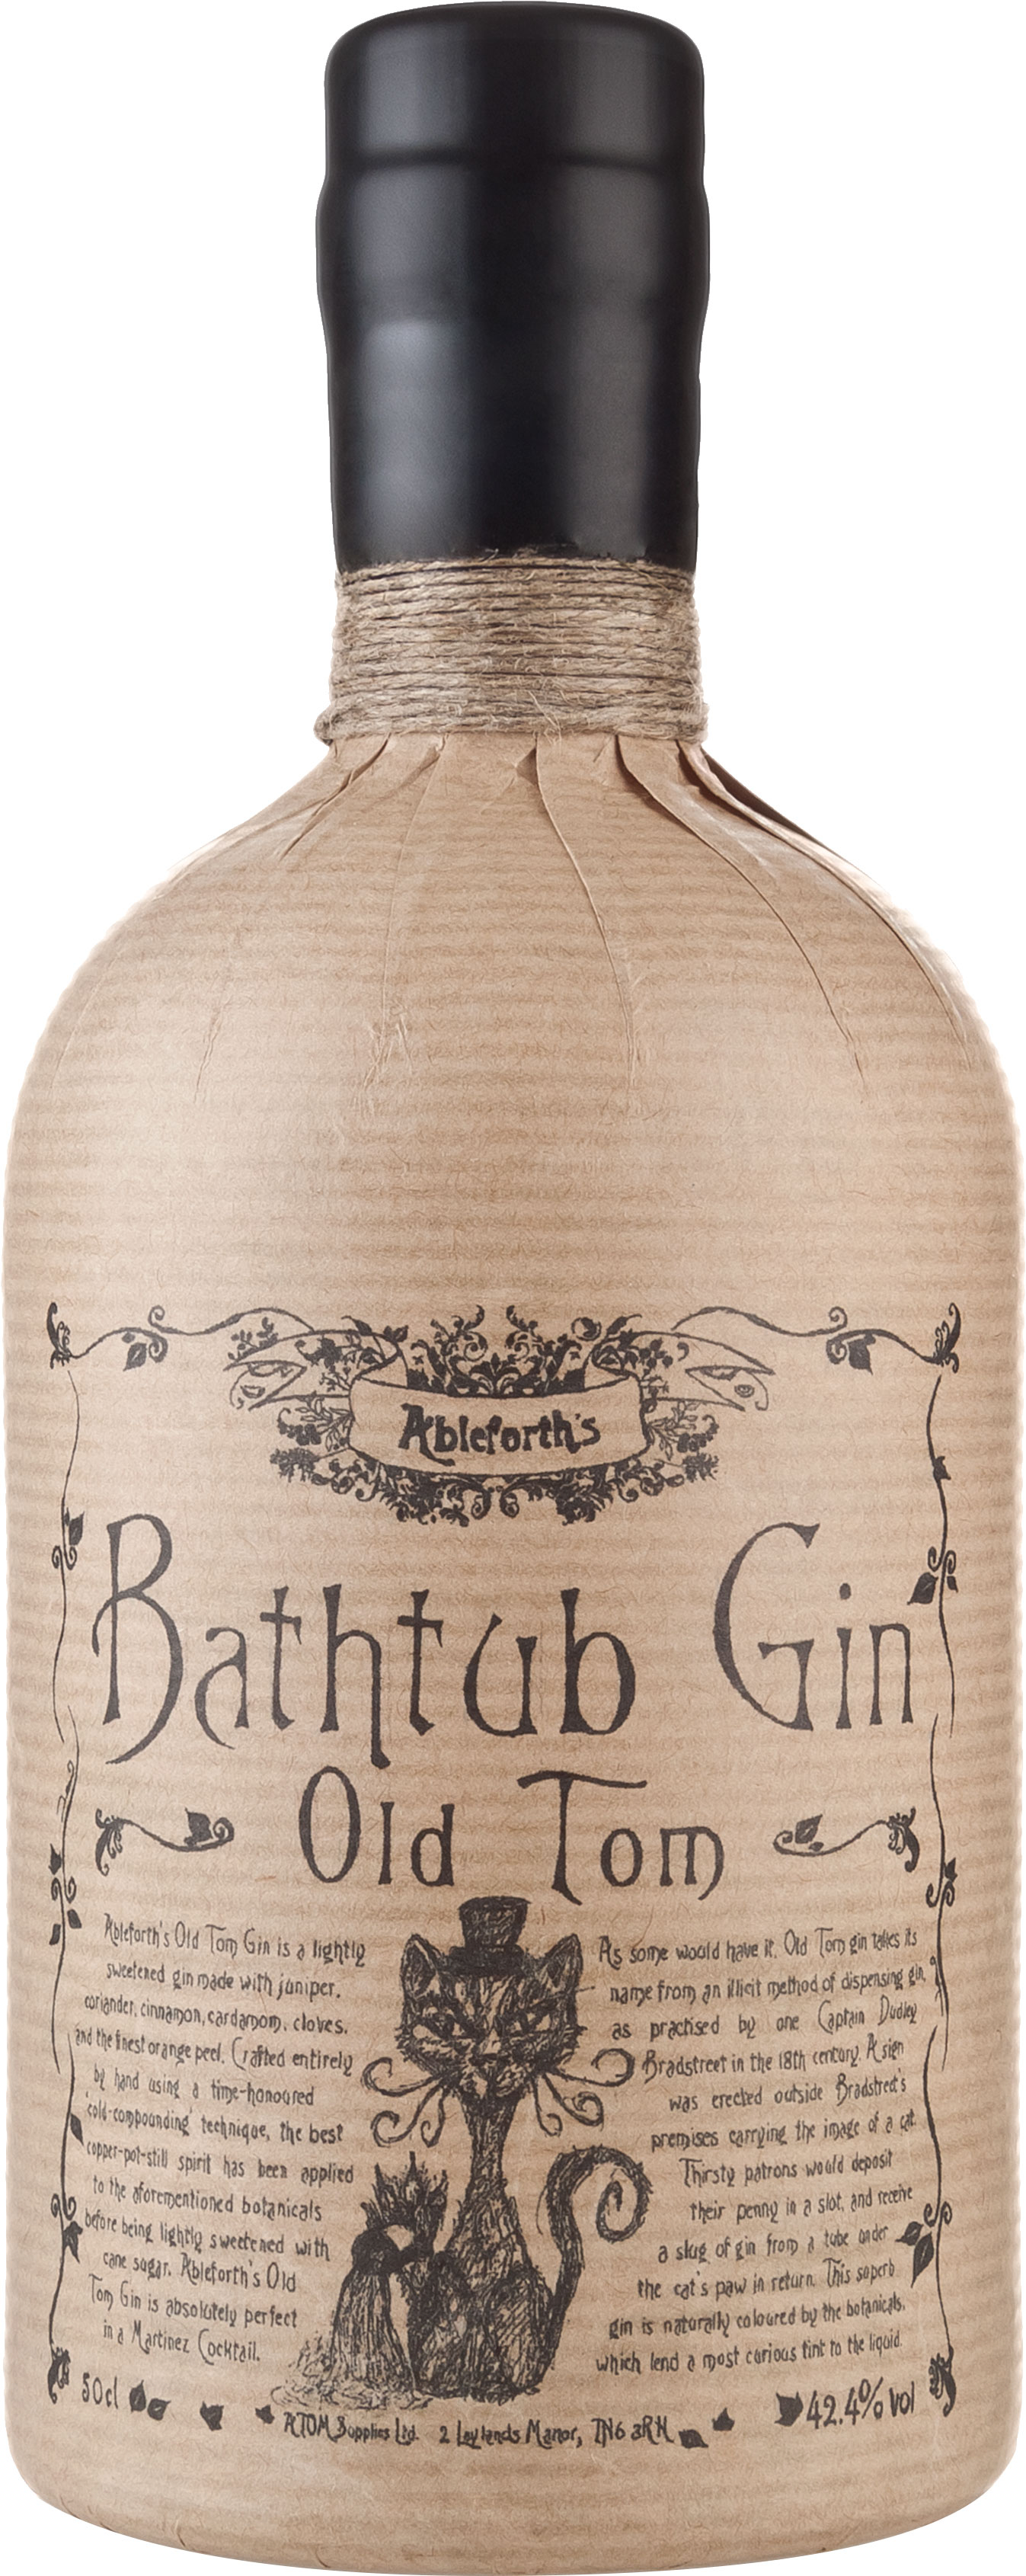 Bathtub - Old Tom Gin 50cl Bottle